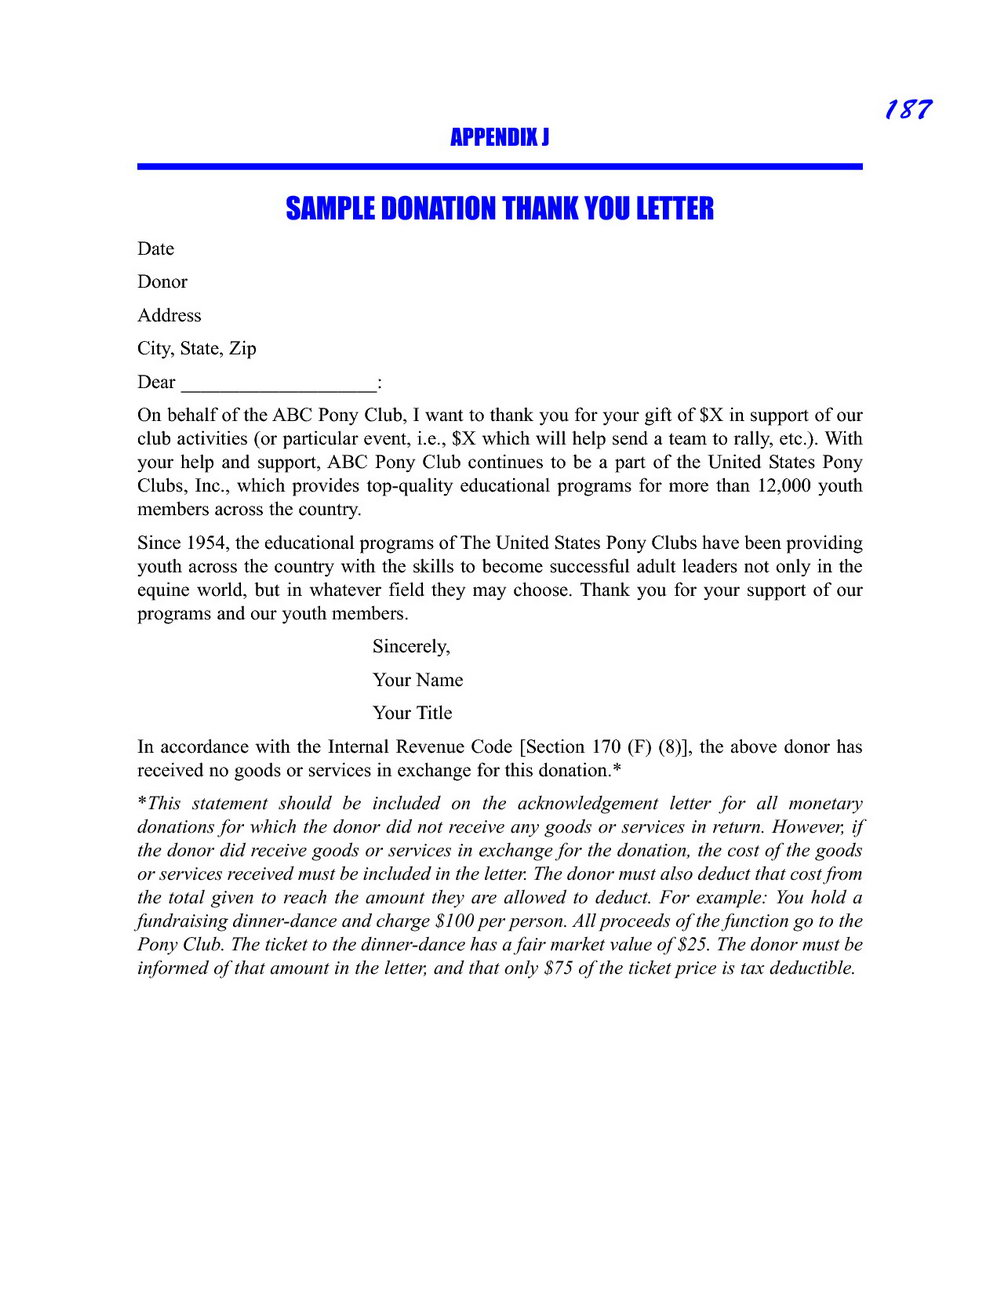 Donation Thank You Letter Template